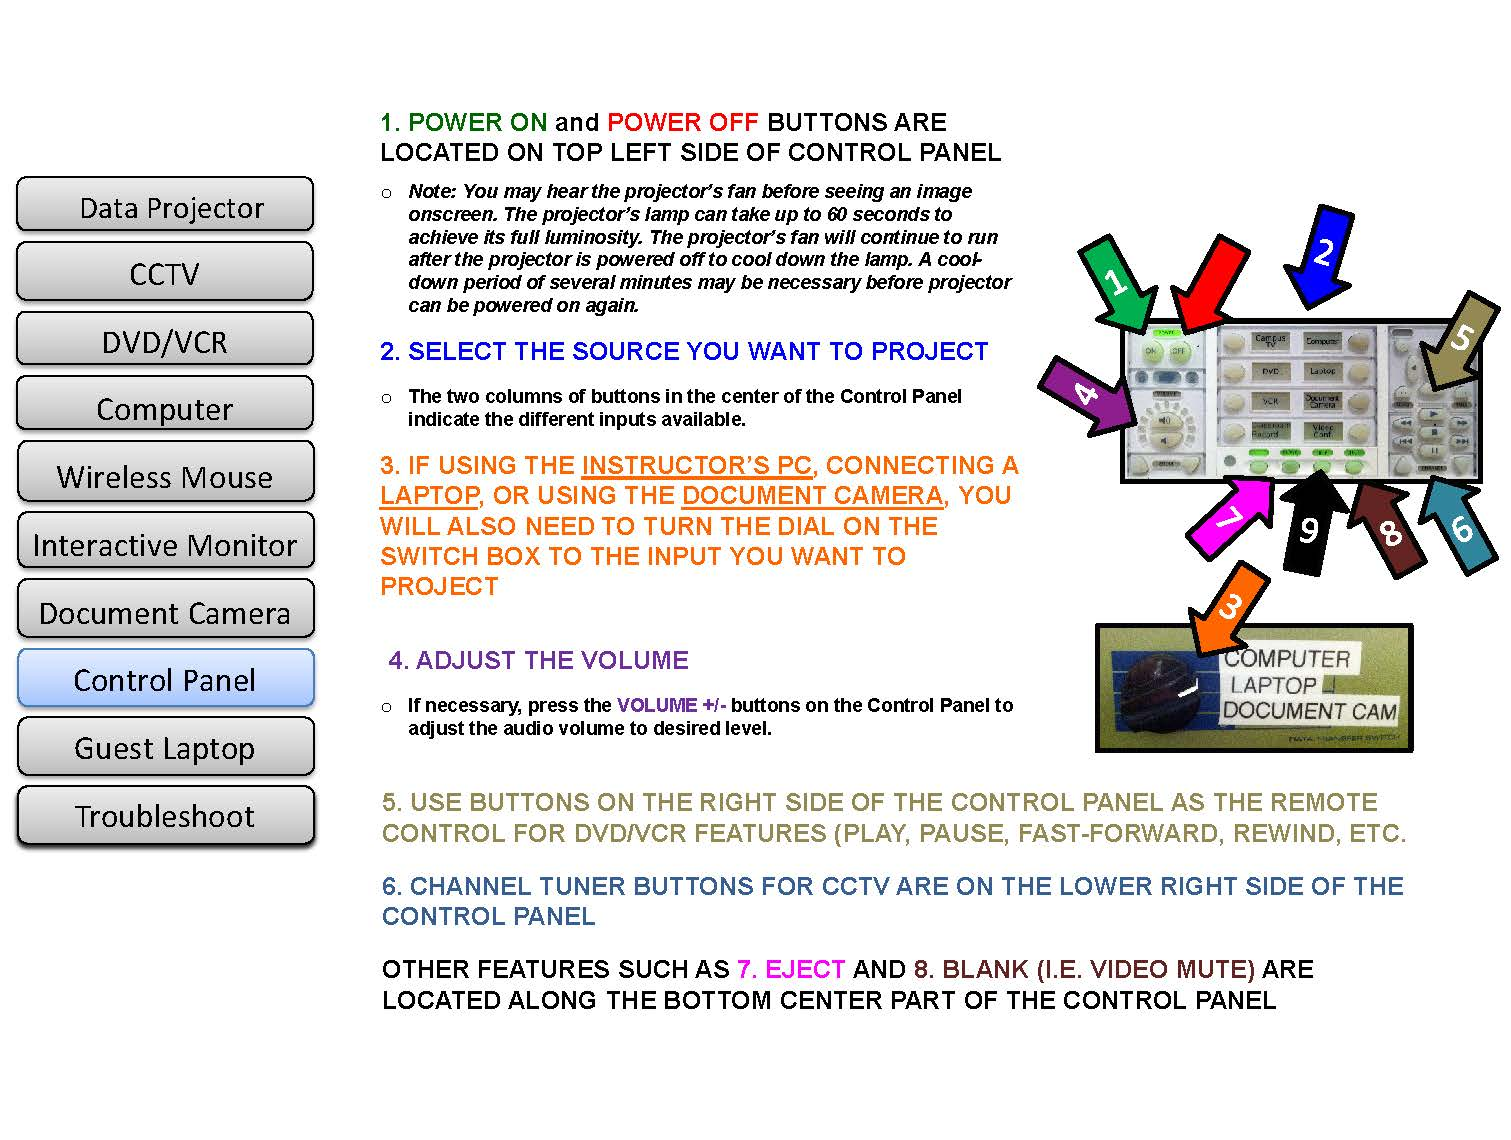 How to use the control panel in the Classroom